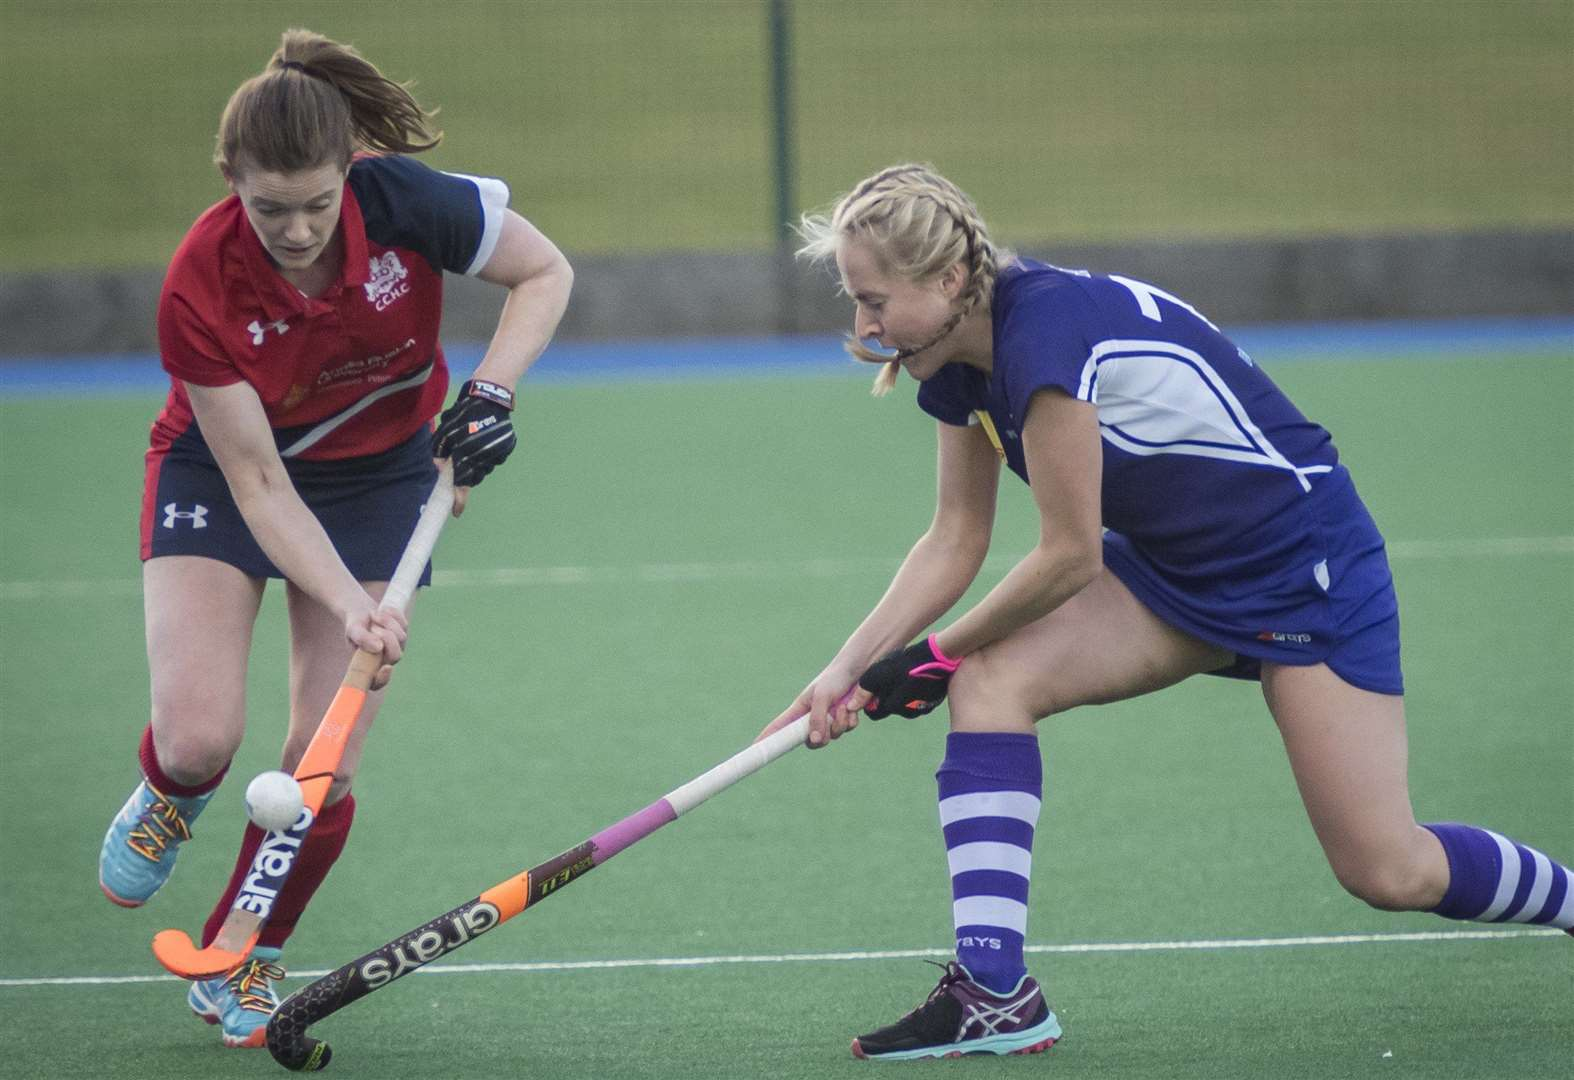 Helen Richardson-Walsh becomes head coach at Cambridge City Hockey Club